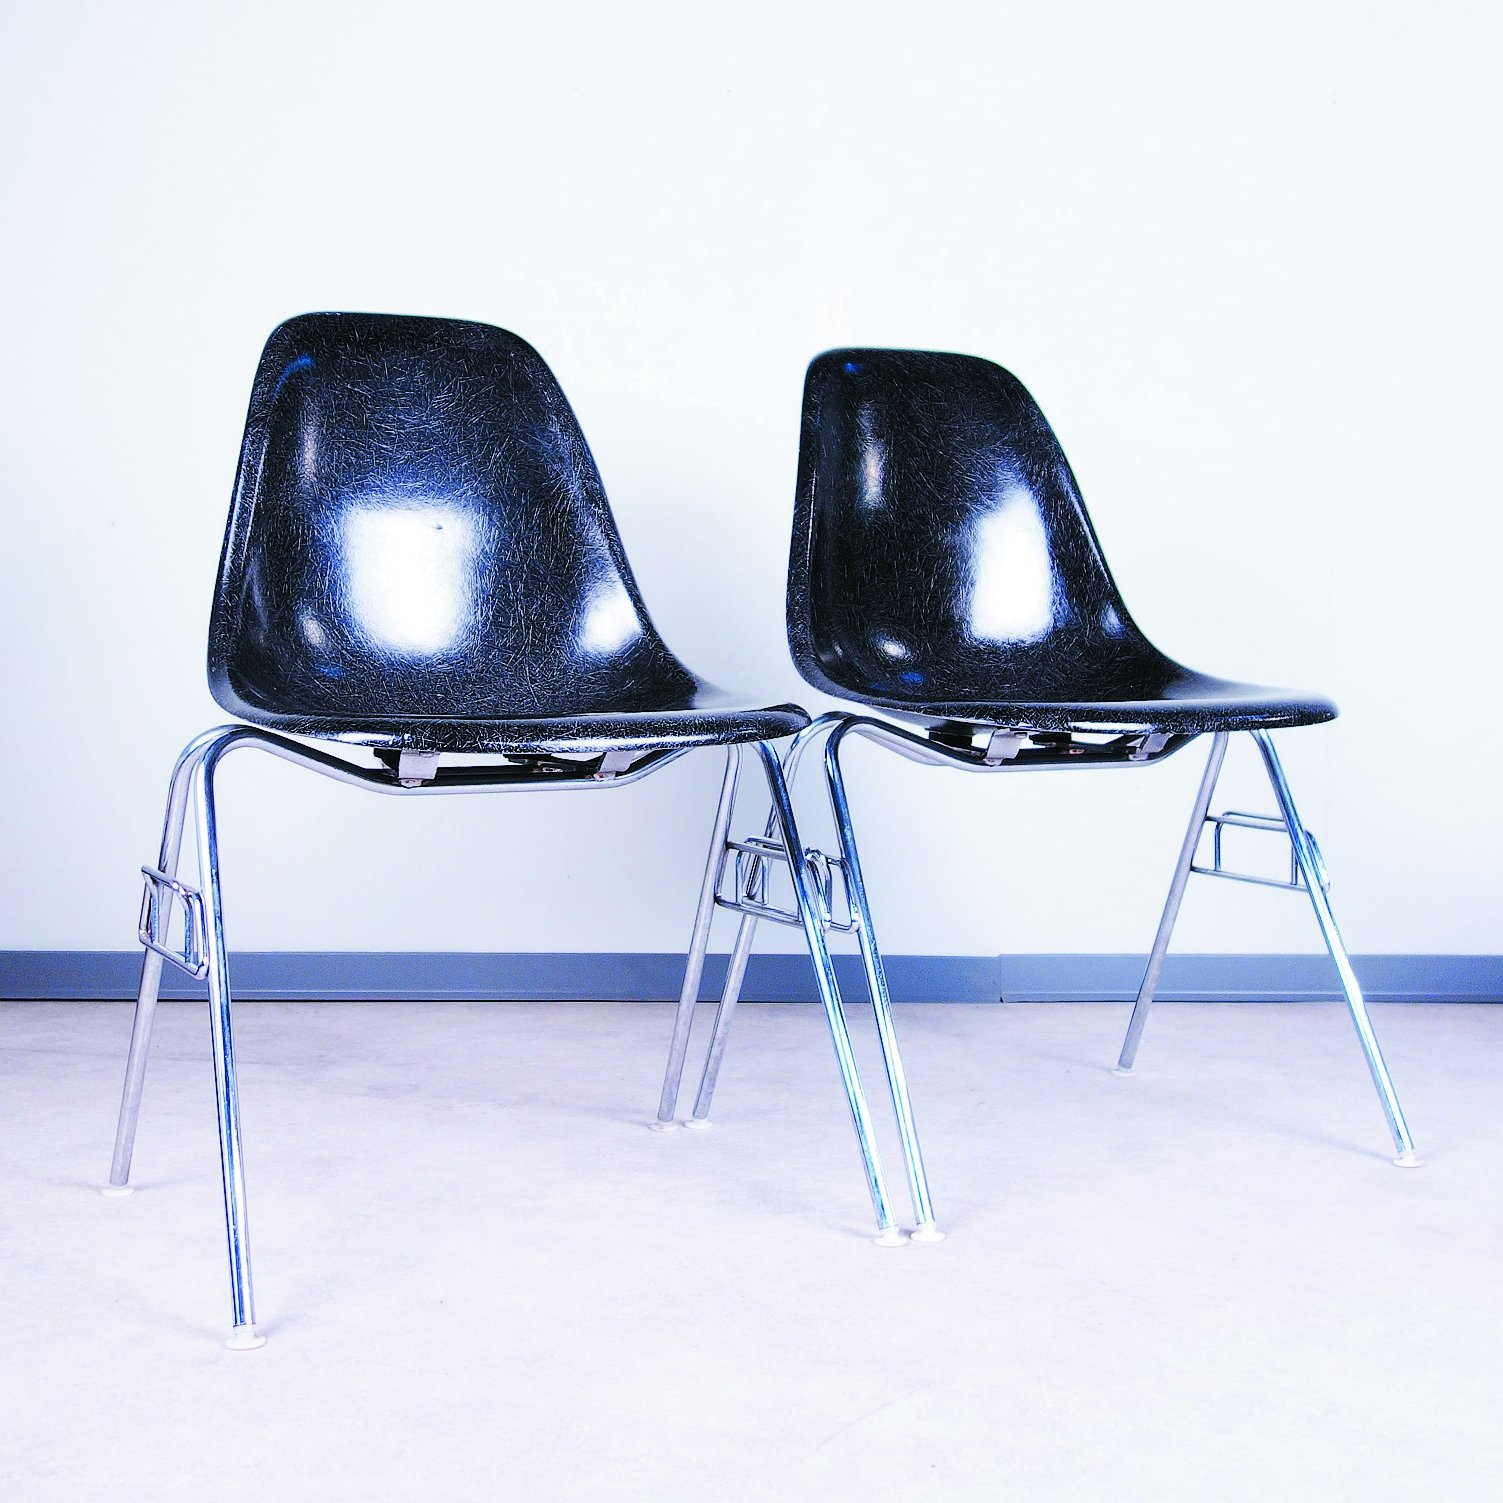 pair of plastic side chair dinner chairs by charles ray. Black Bedroom Furniture Sets. Home Design Ideas